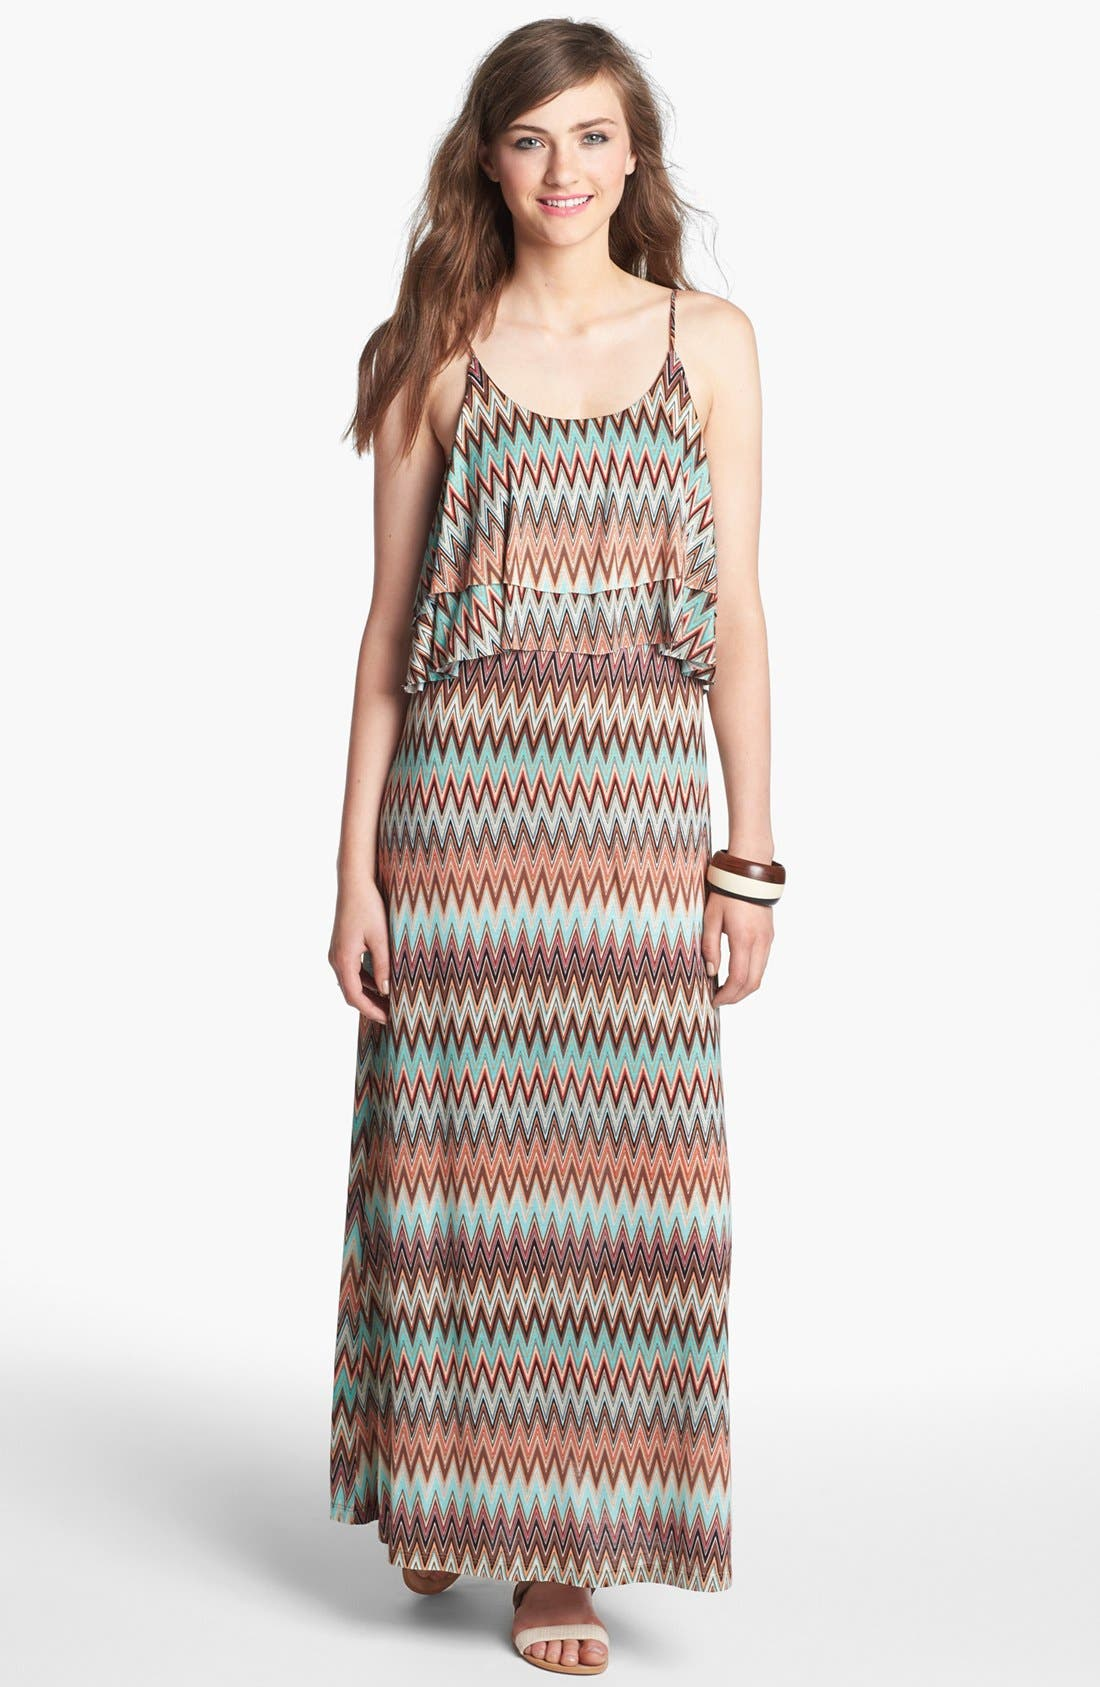 Main Image - Minty Tiered Ruffle Maxi Dress (Juniors) (Online Only)